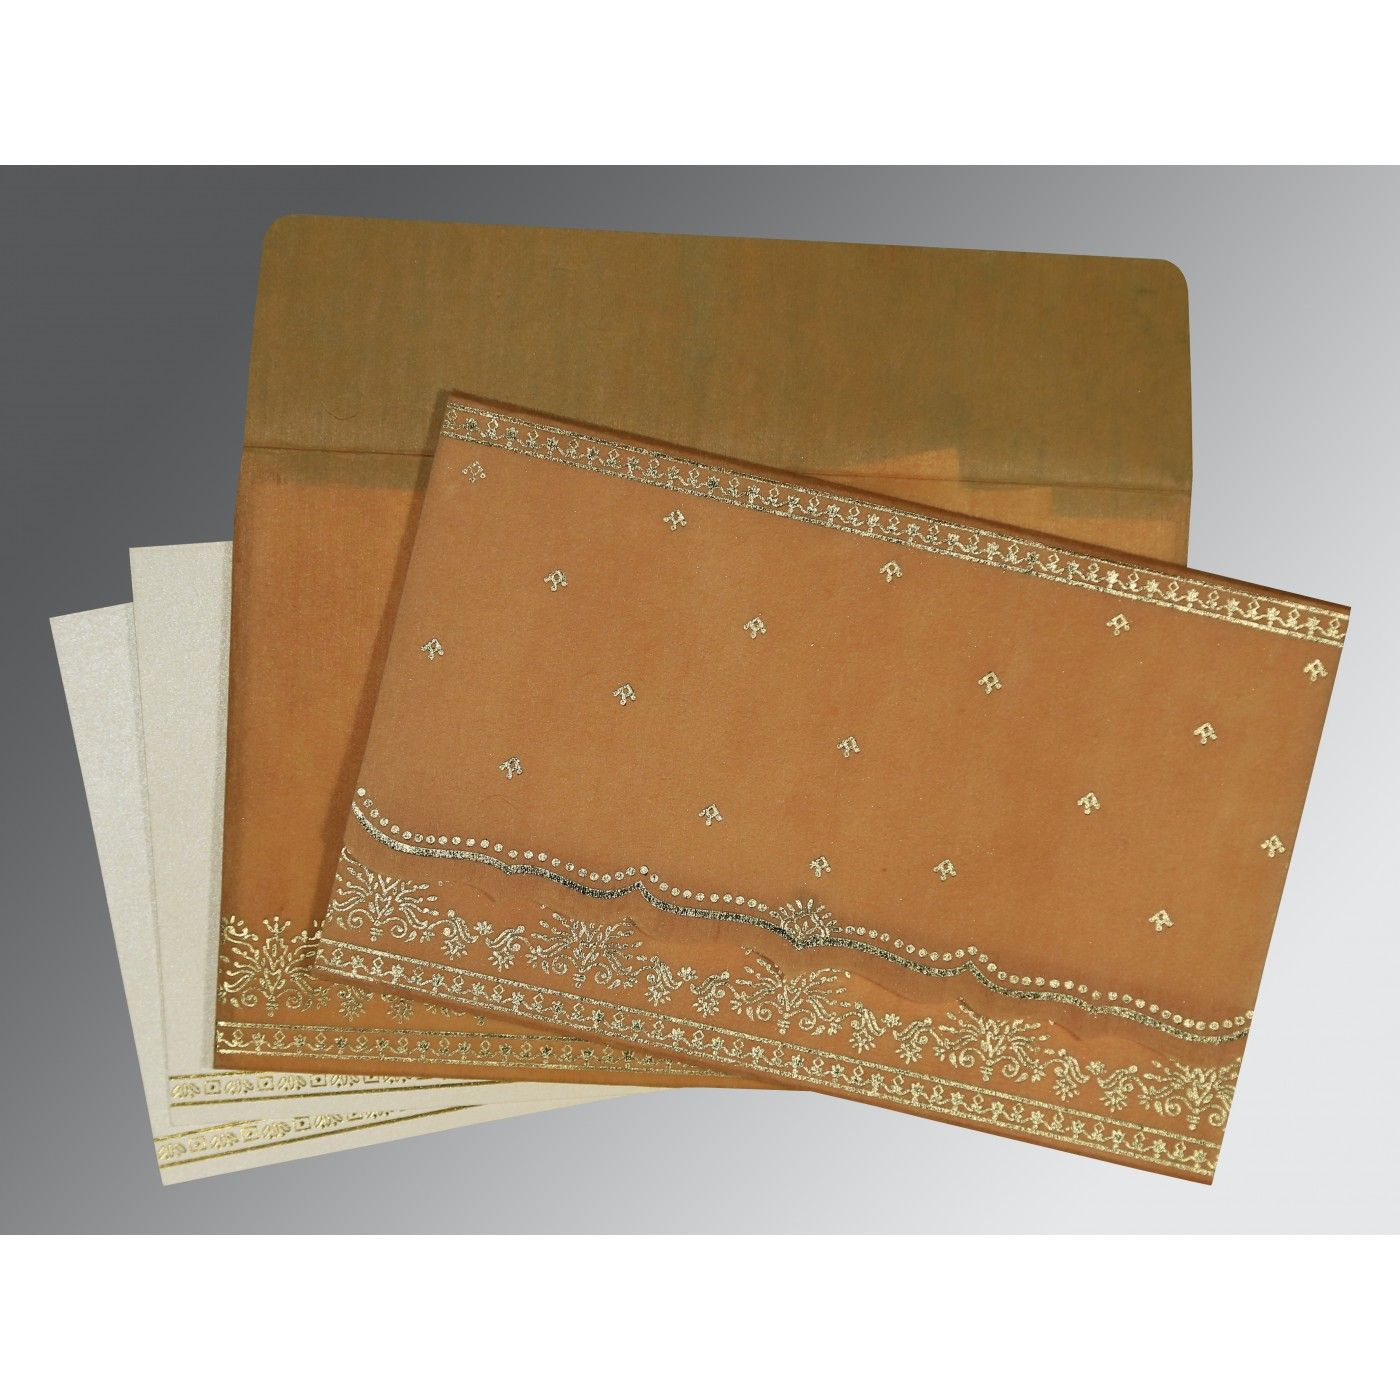 CHAMOISEE WOOLY FOIL STAMPED WEDDING INVITATION : CD-8241J - IndianWeddingCards